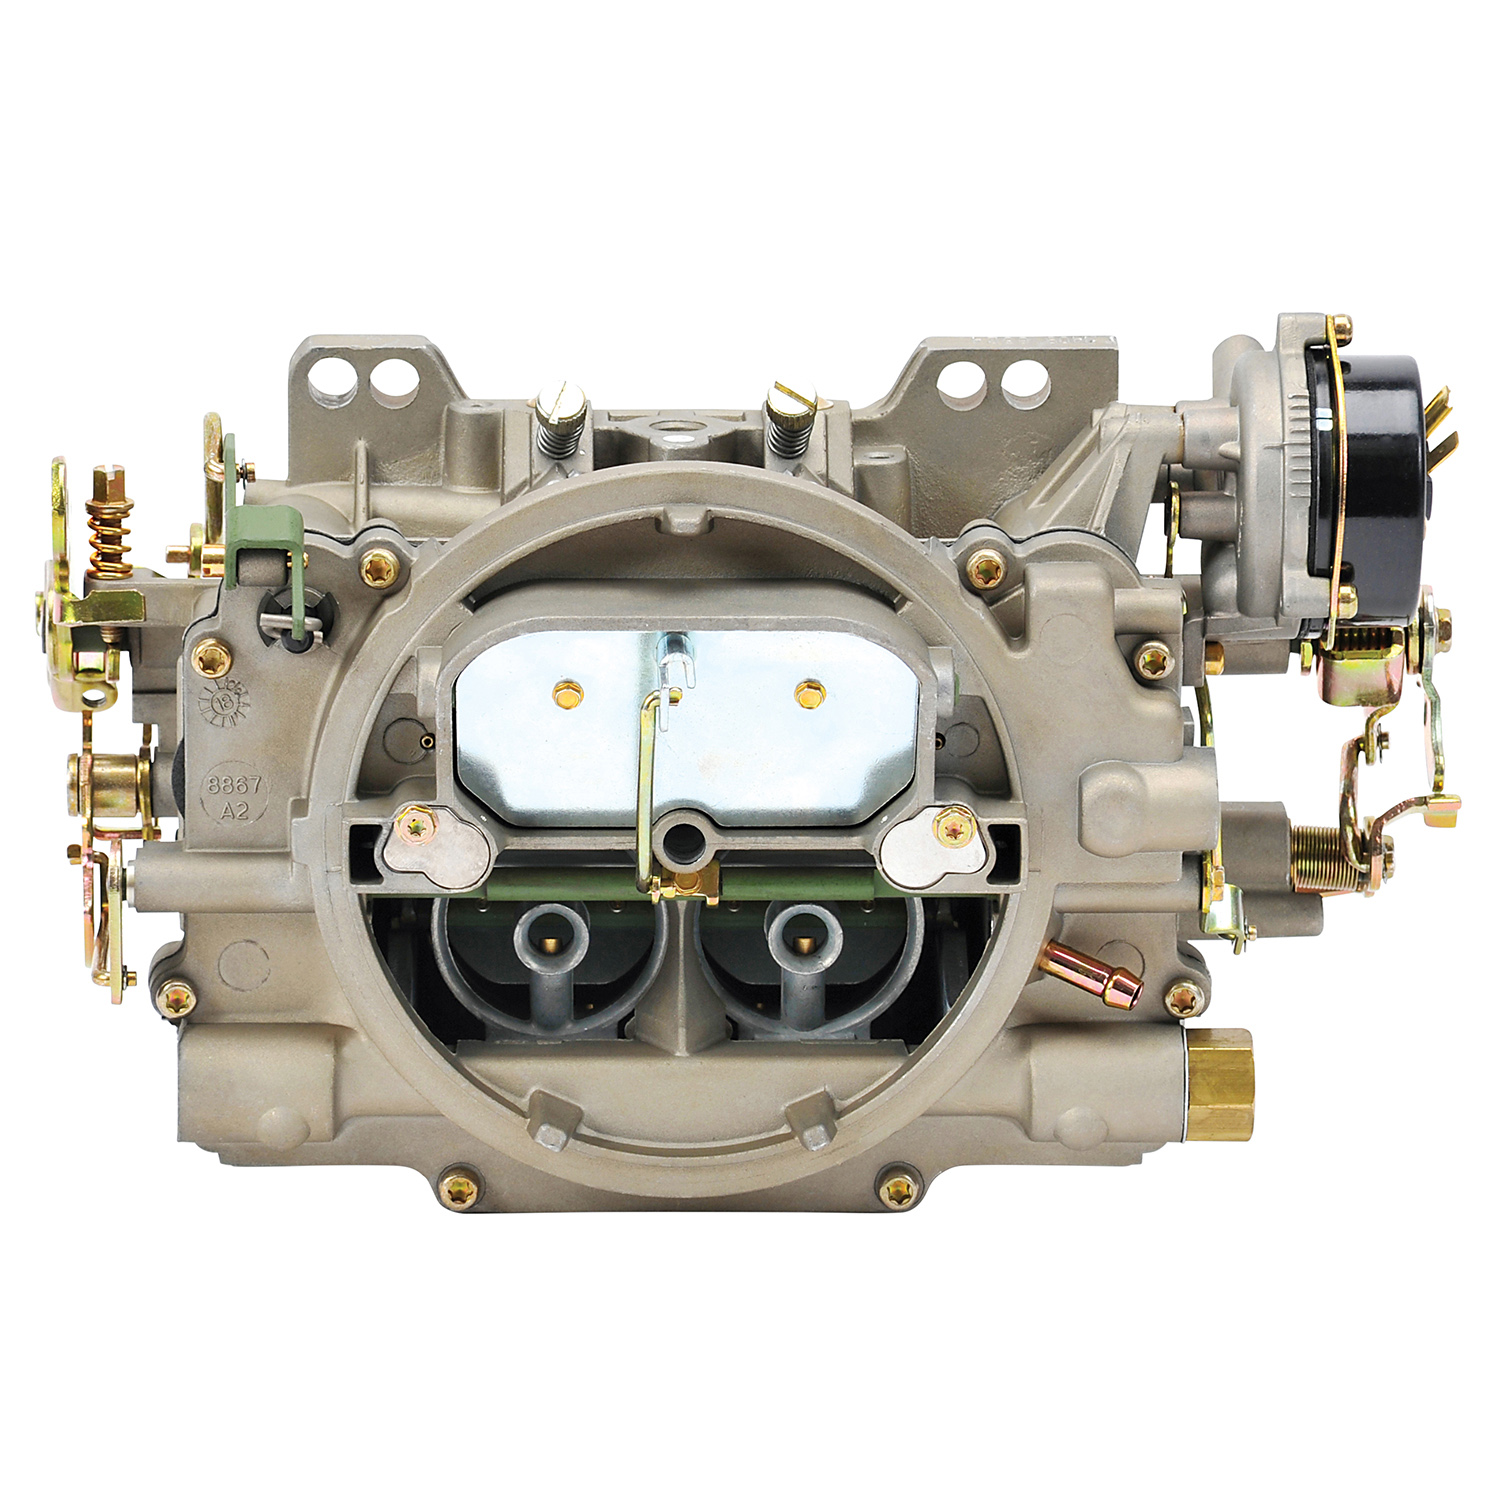 Edelbrock 1409 Marine Series 600 CFM Carburetor with